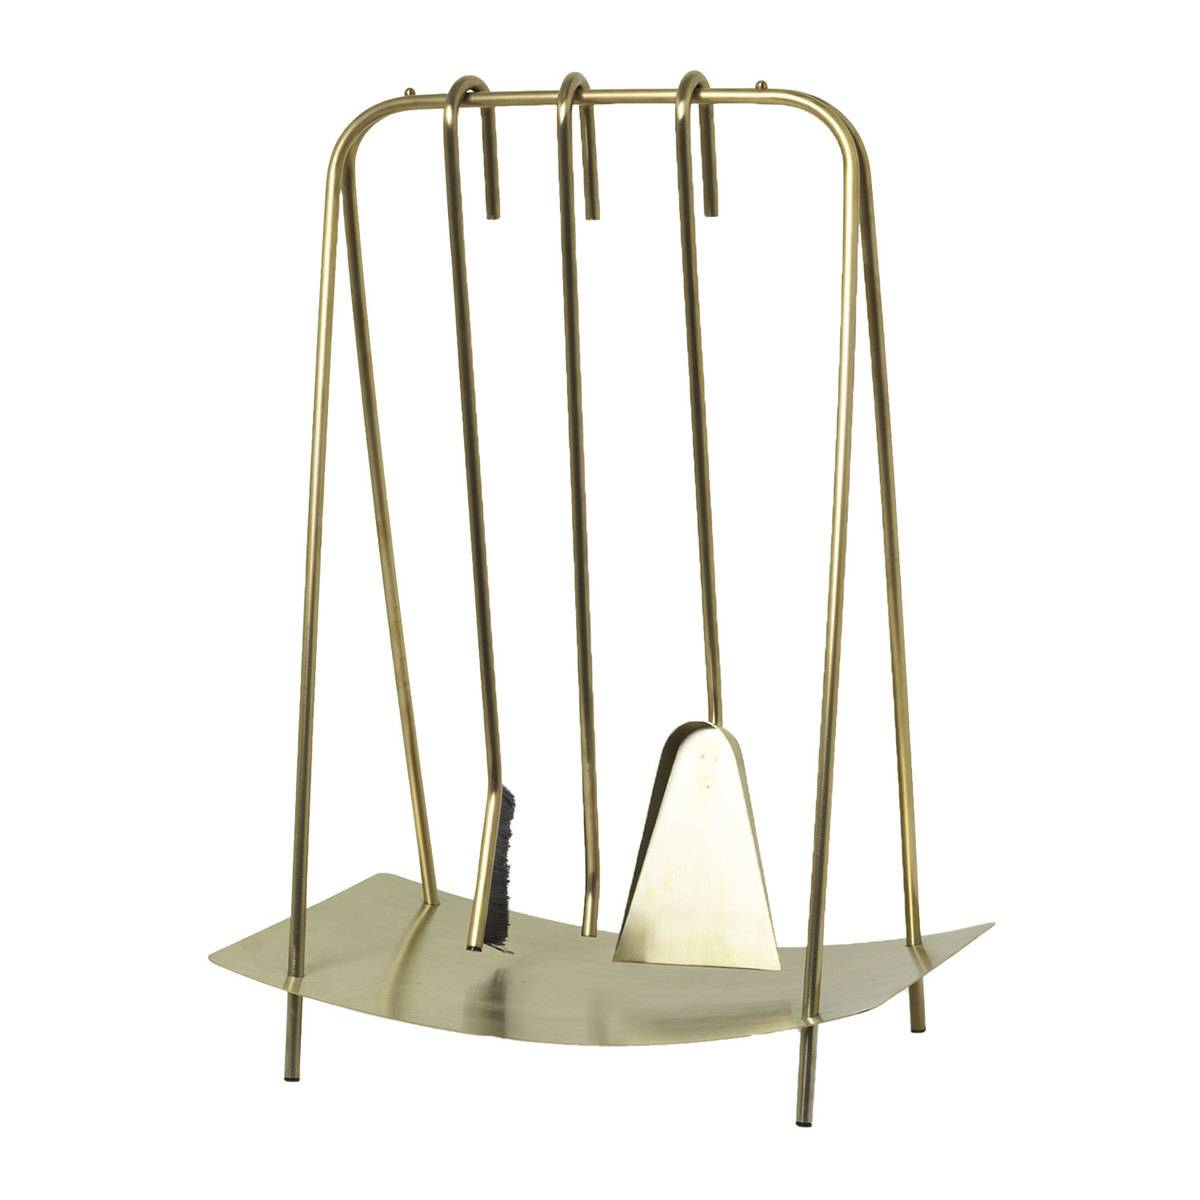 Ferm Living Port fireplace tools, brass